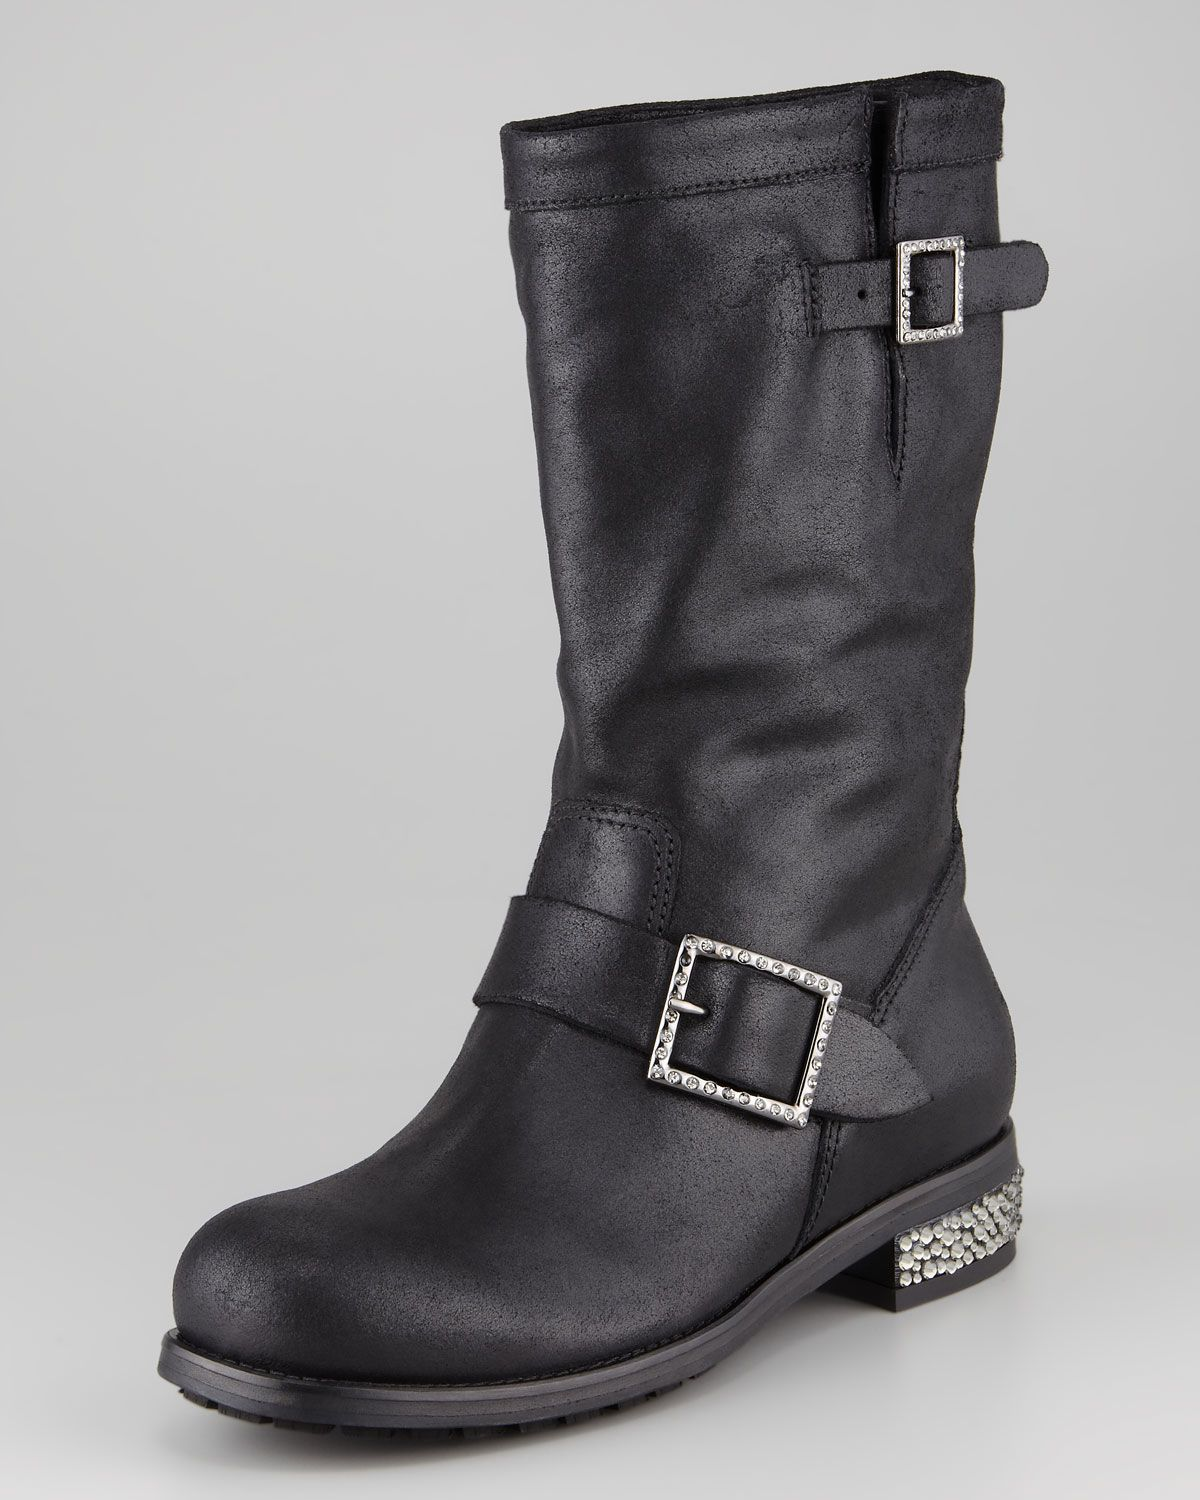 Jimmy Choo Perforated Moto Booties for sale cheap authentic cheap find great sale store l6N0F